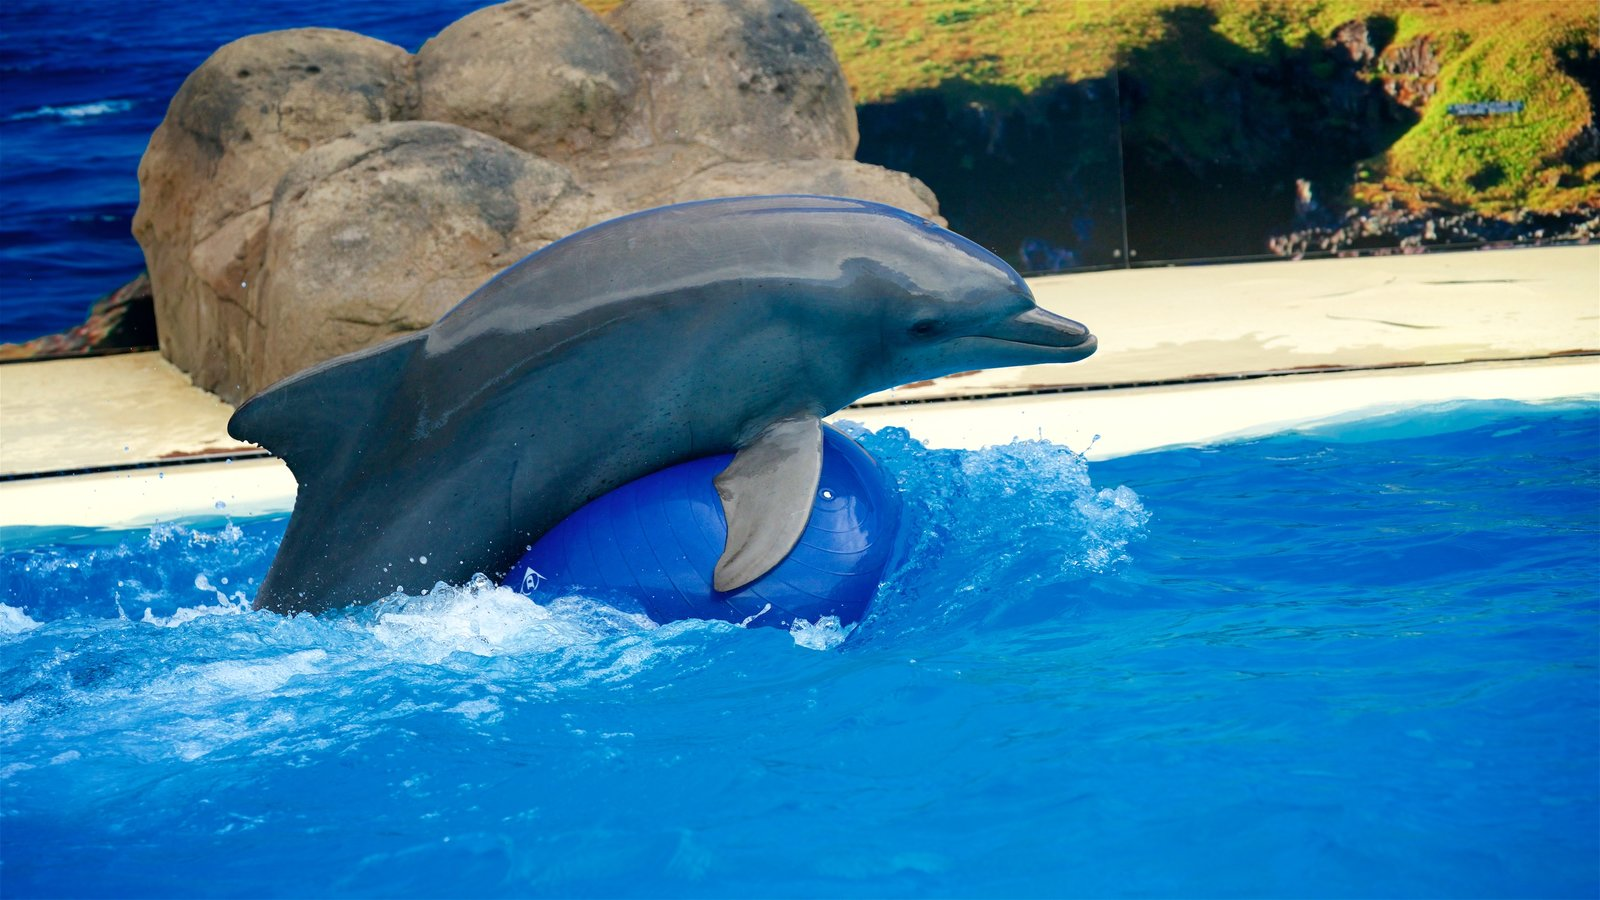 Dolphin Marine Magic showing zoo animals and cuddly or friendly animals